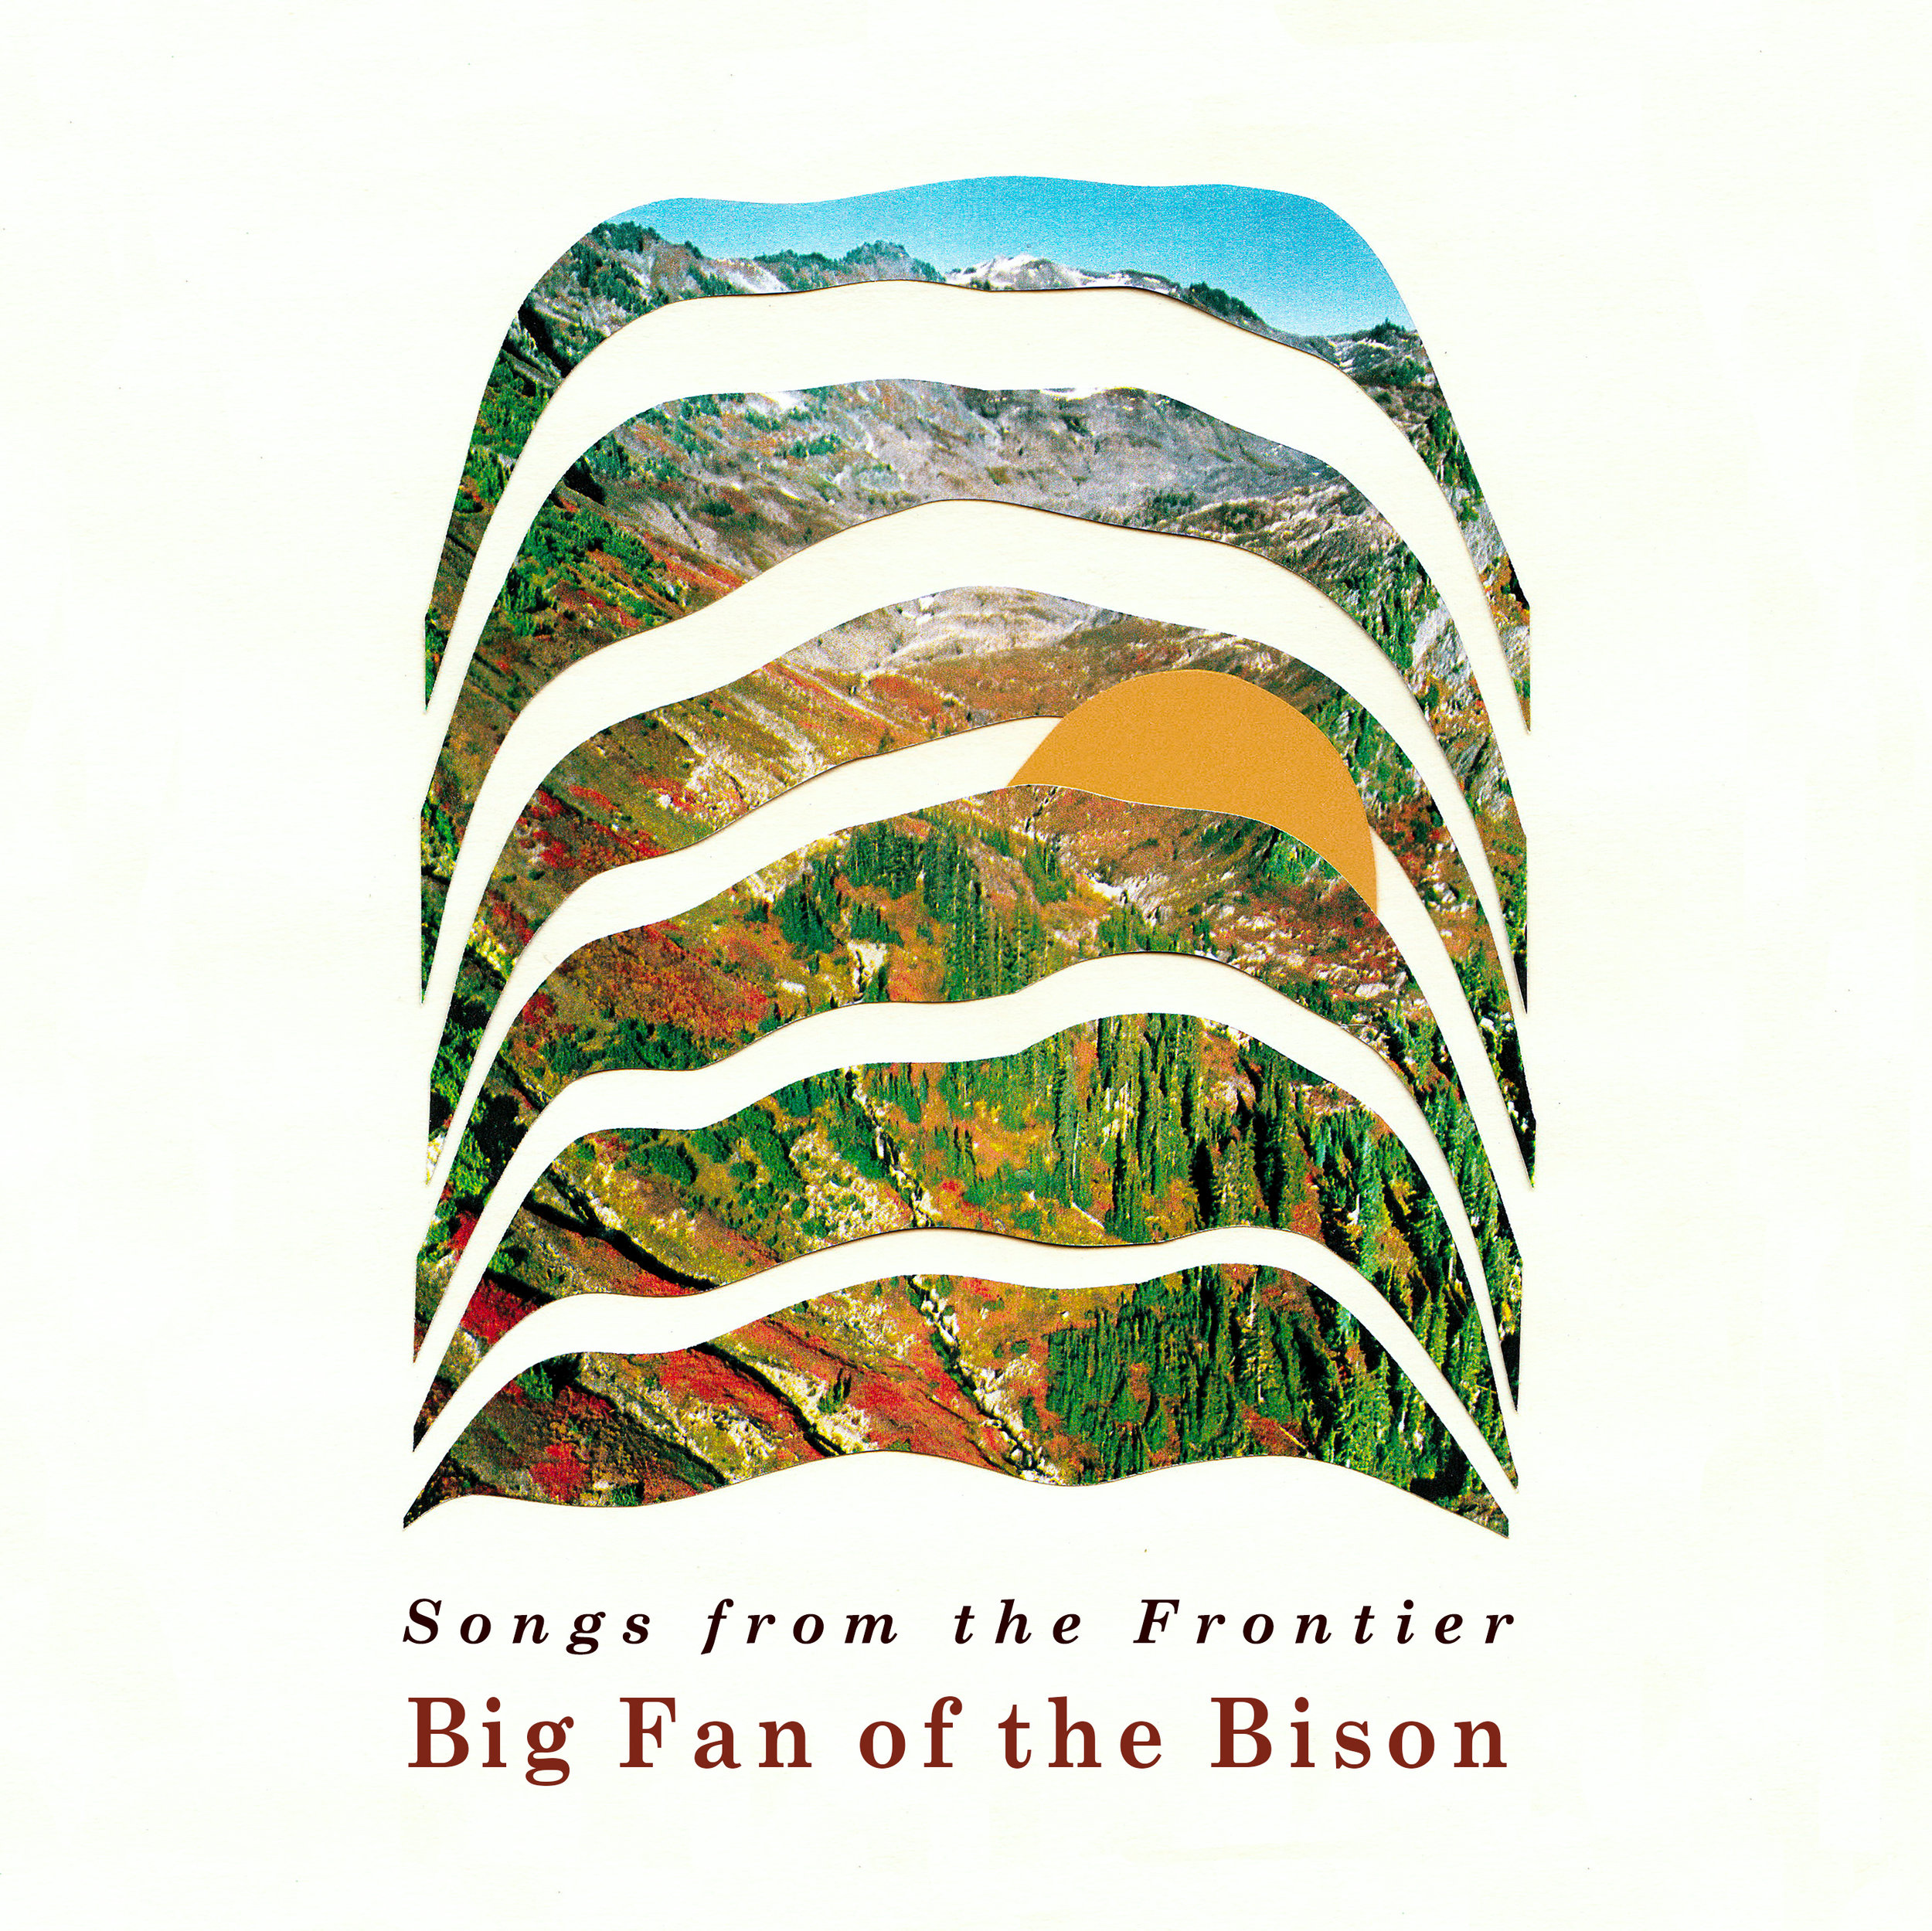 Songs from the Frontier by BFOTB